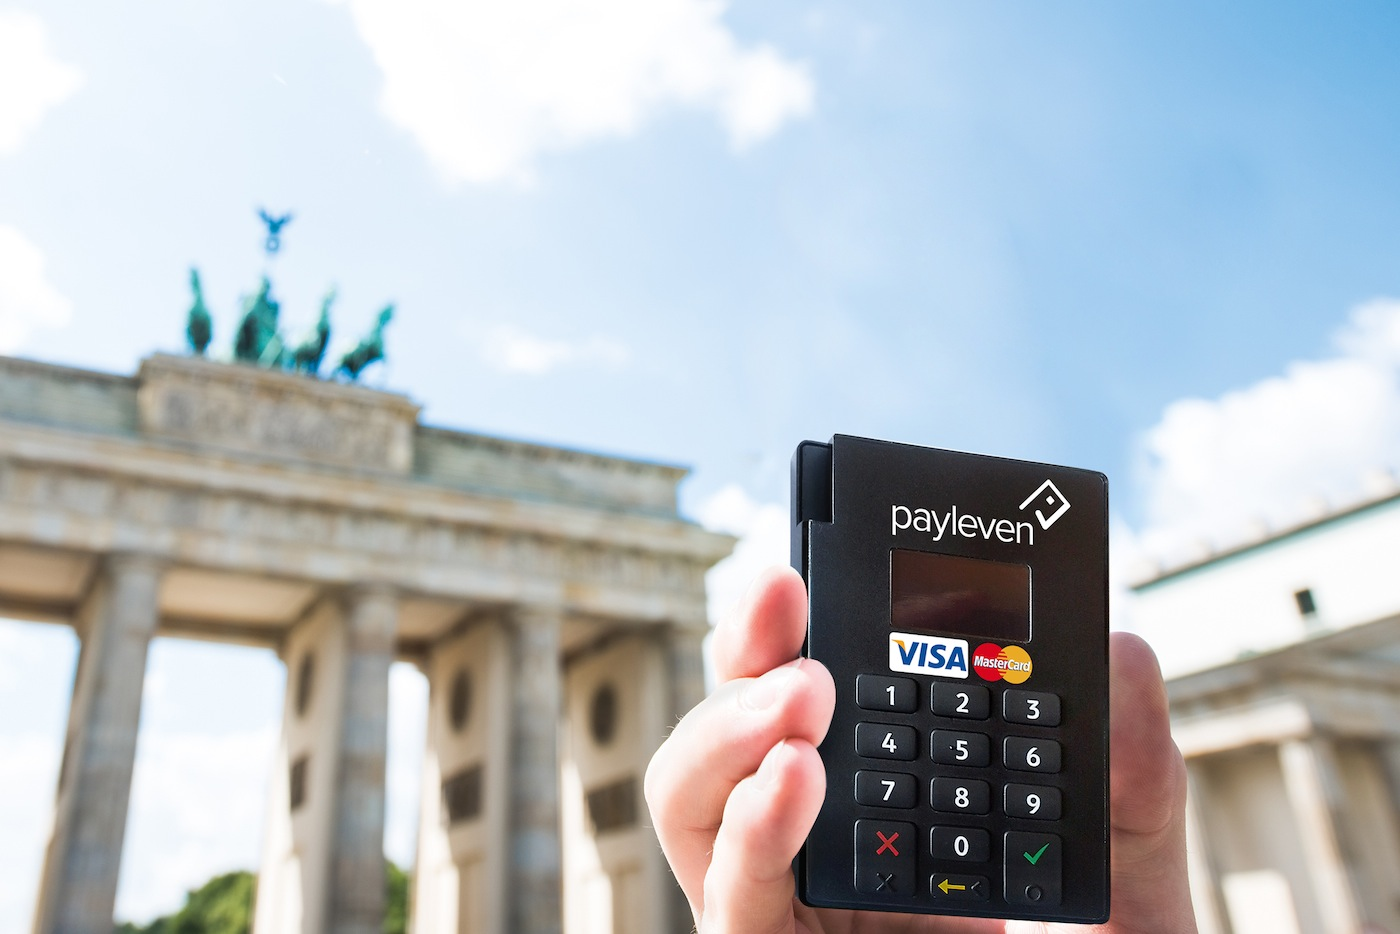 Square clone Payleven links up with O2 Germany to bring its card readers to retailers